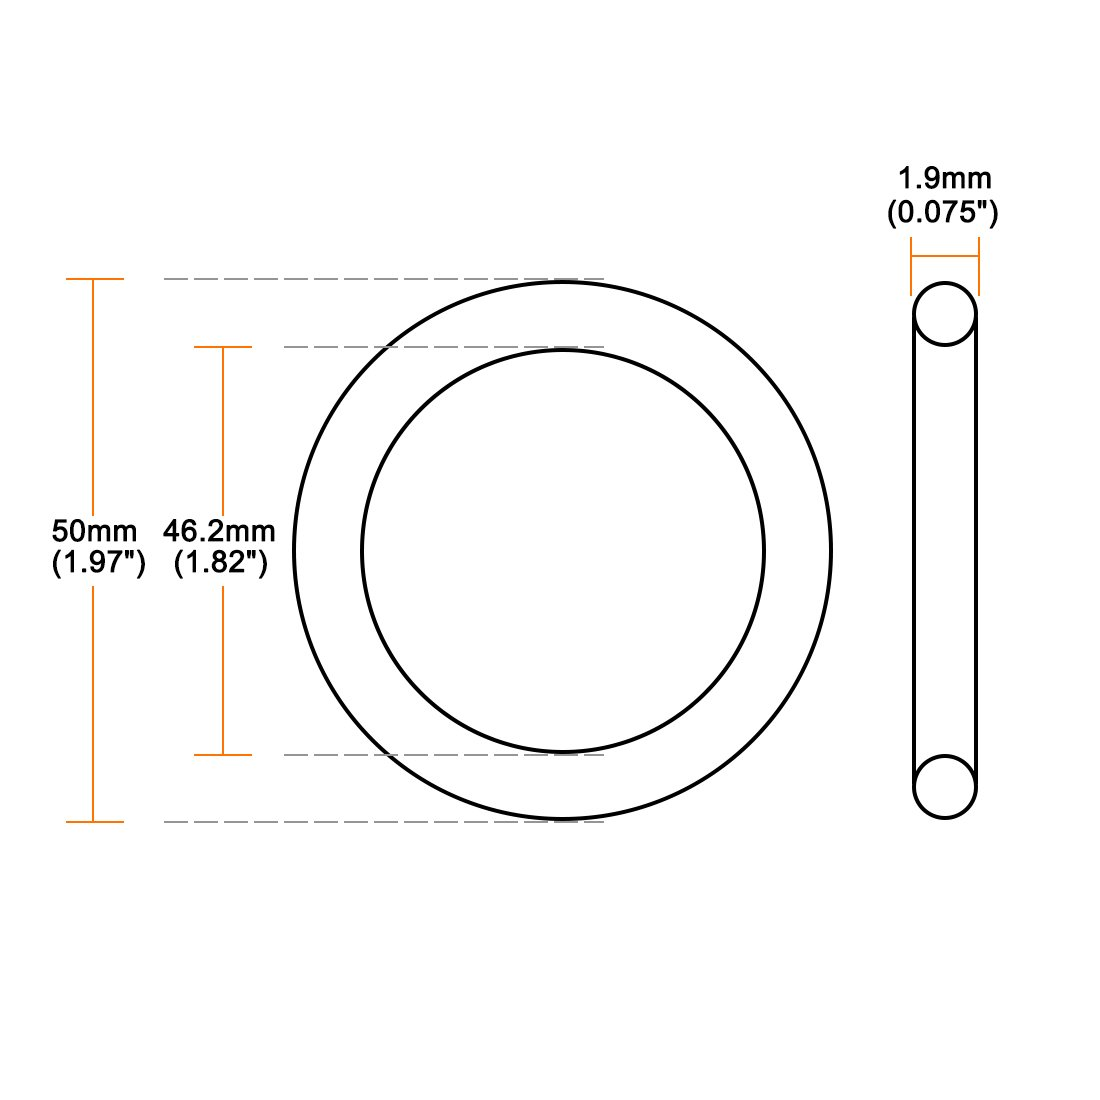 100mm x 96mm x 2mm Red Silicone O Ring Oil Seal Gaskets